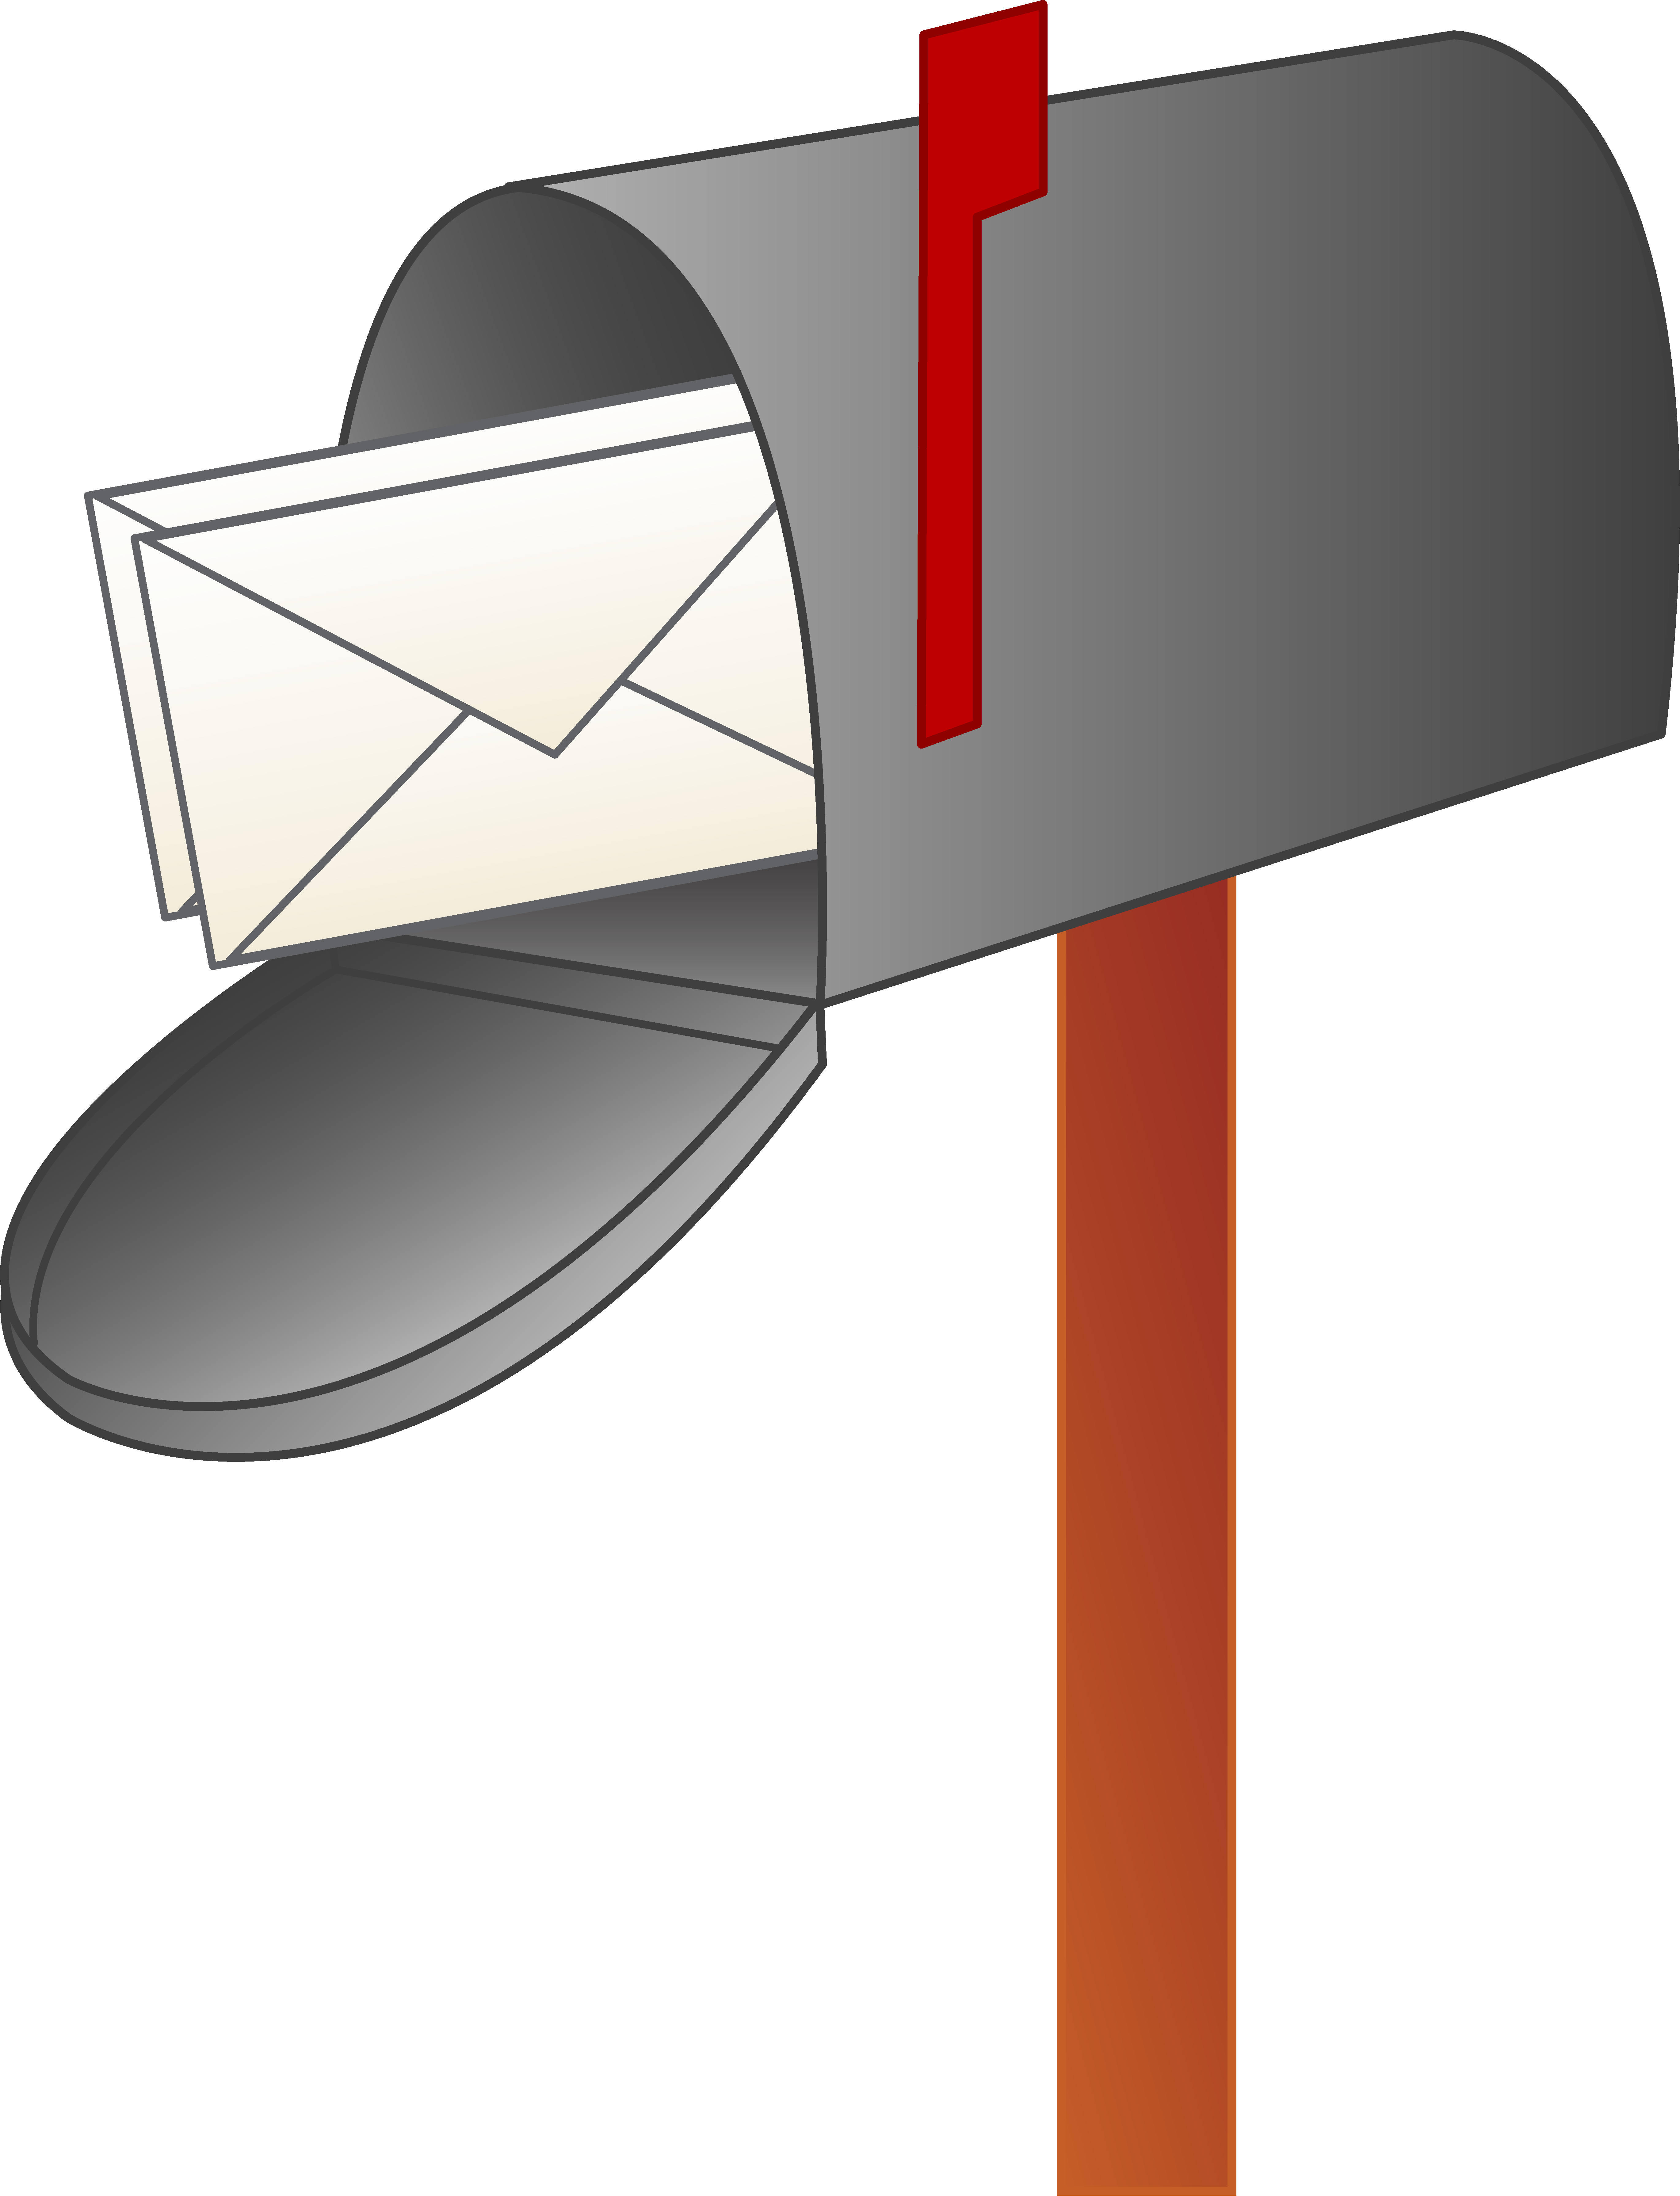 Post clipart. Mailbox with letters free